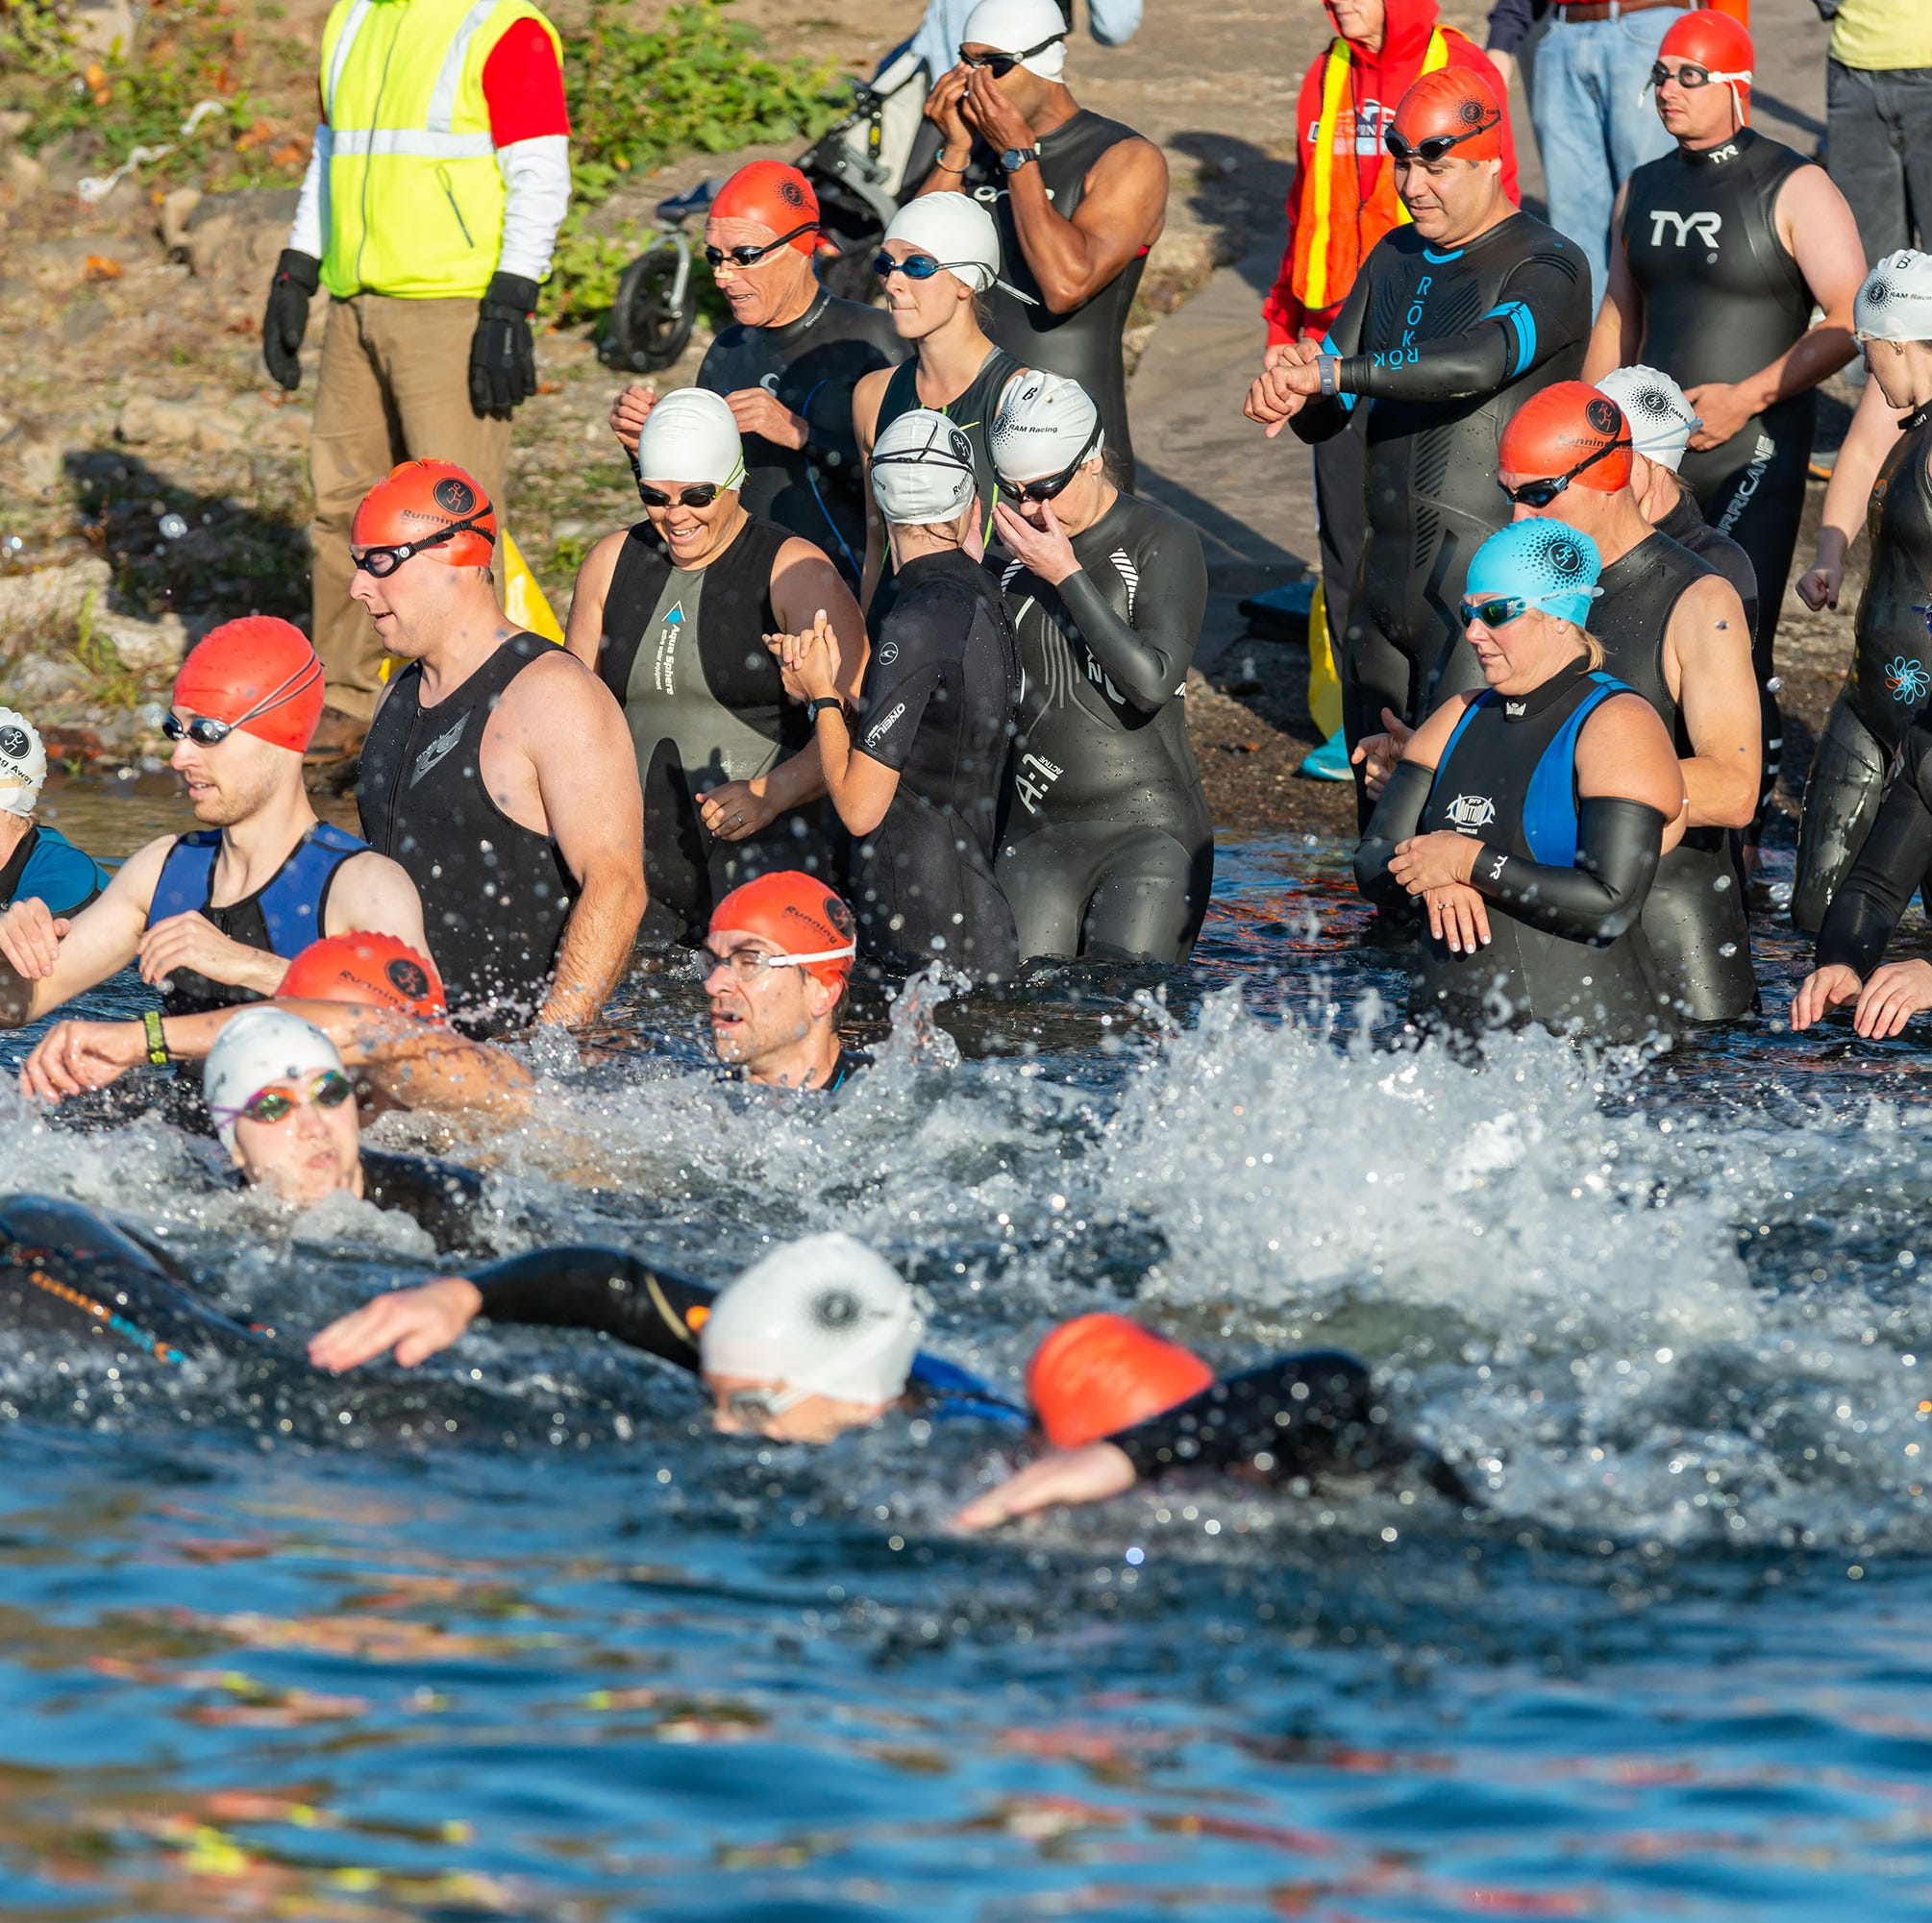 Salem triathletes dive in: Rotary Riverfest brings back swimming portion of event